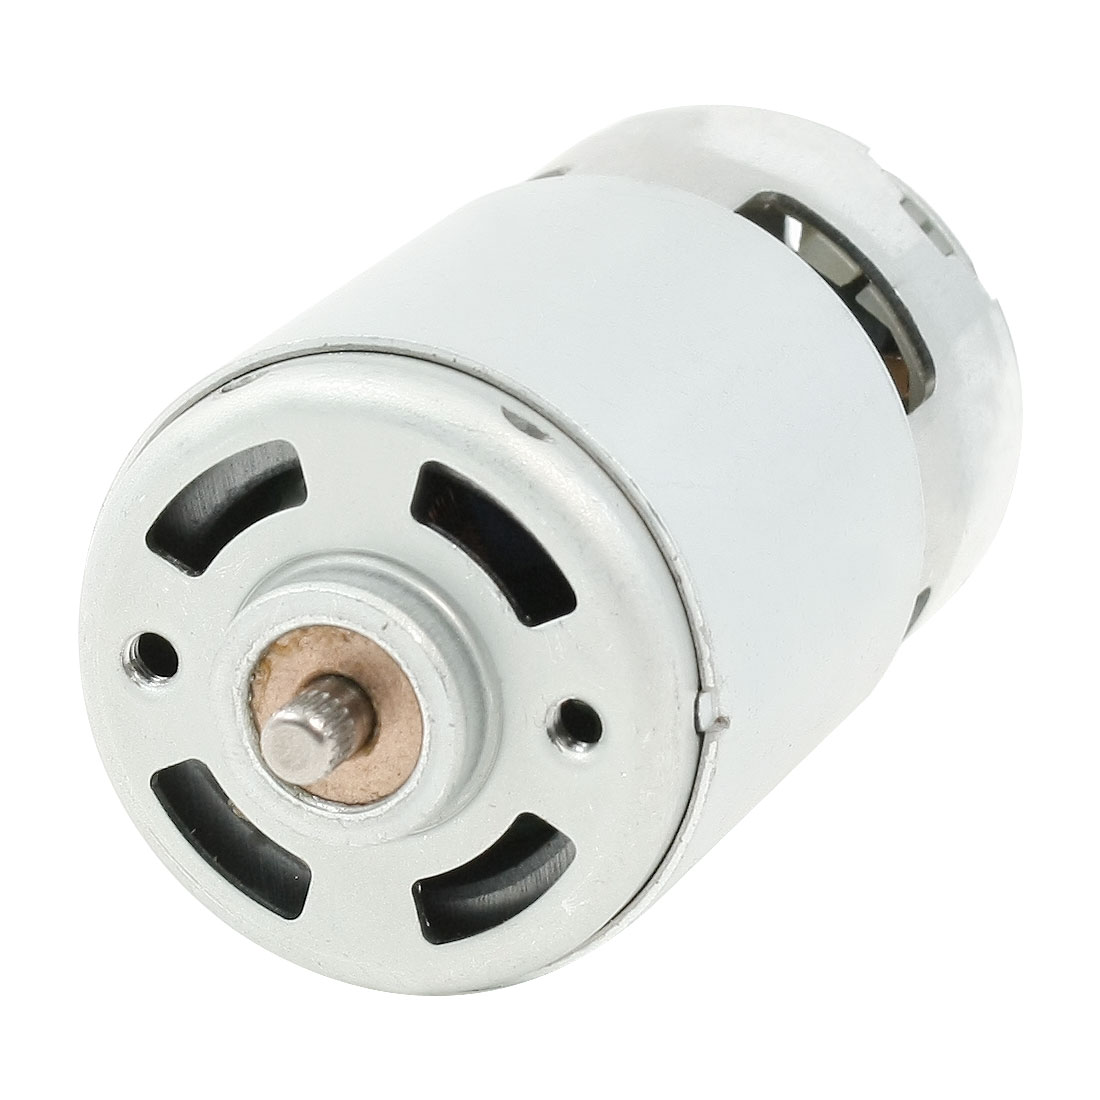 1900RPM/3800RPM 12V 0.11A/24V 0.13A High Torque Magnetic Electric Mini DC Motor